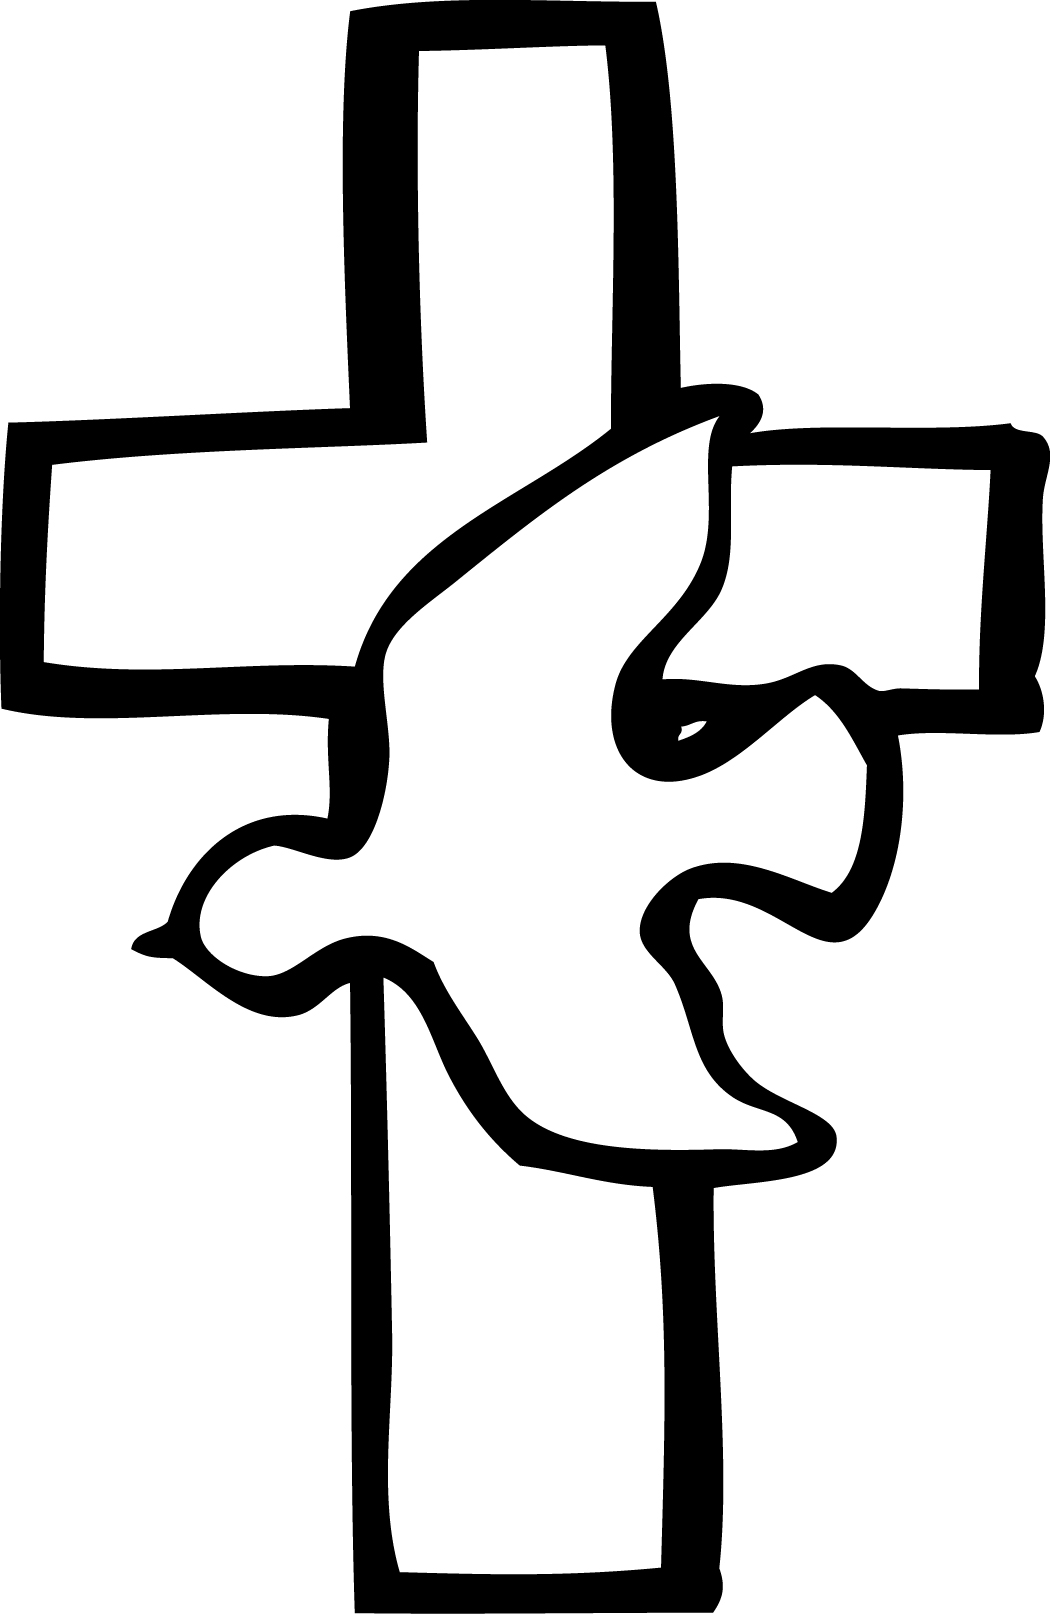 Celt clipart catholic funeral Catholic free clipart Clipartix 2